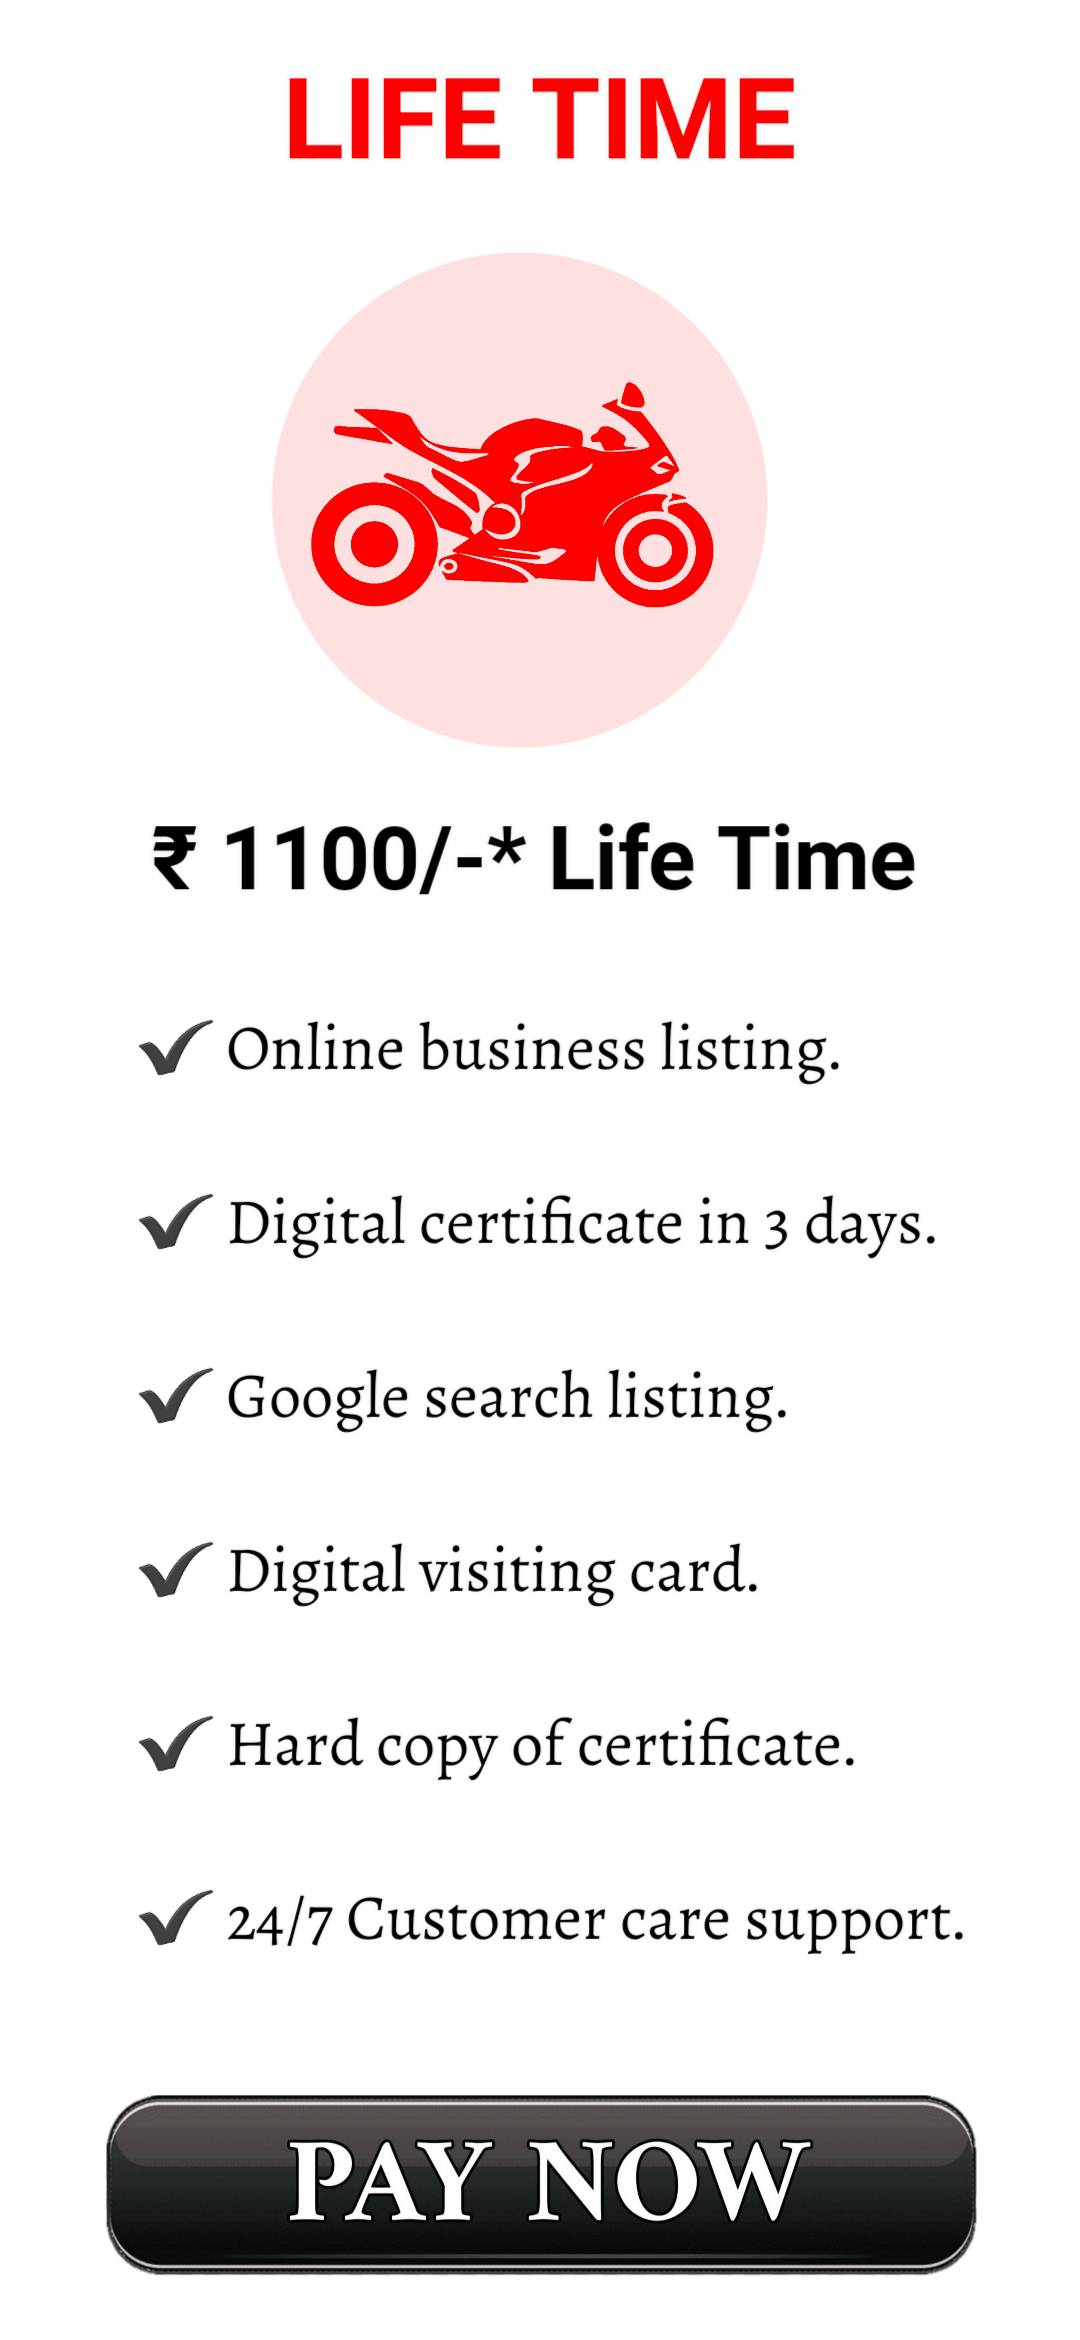 LIFE TIME : 1100/- + TAXES AND FEES